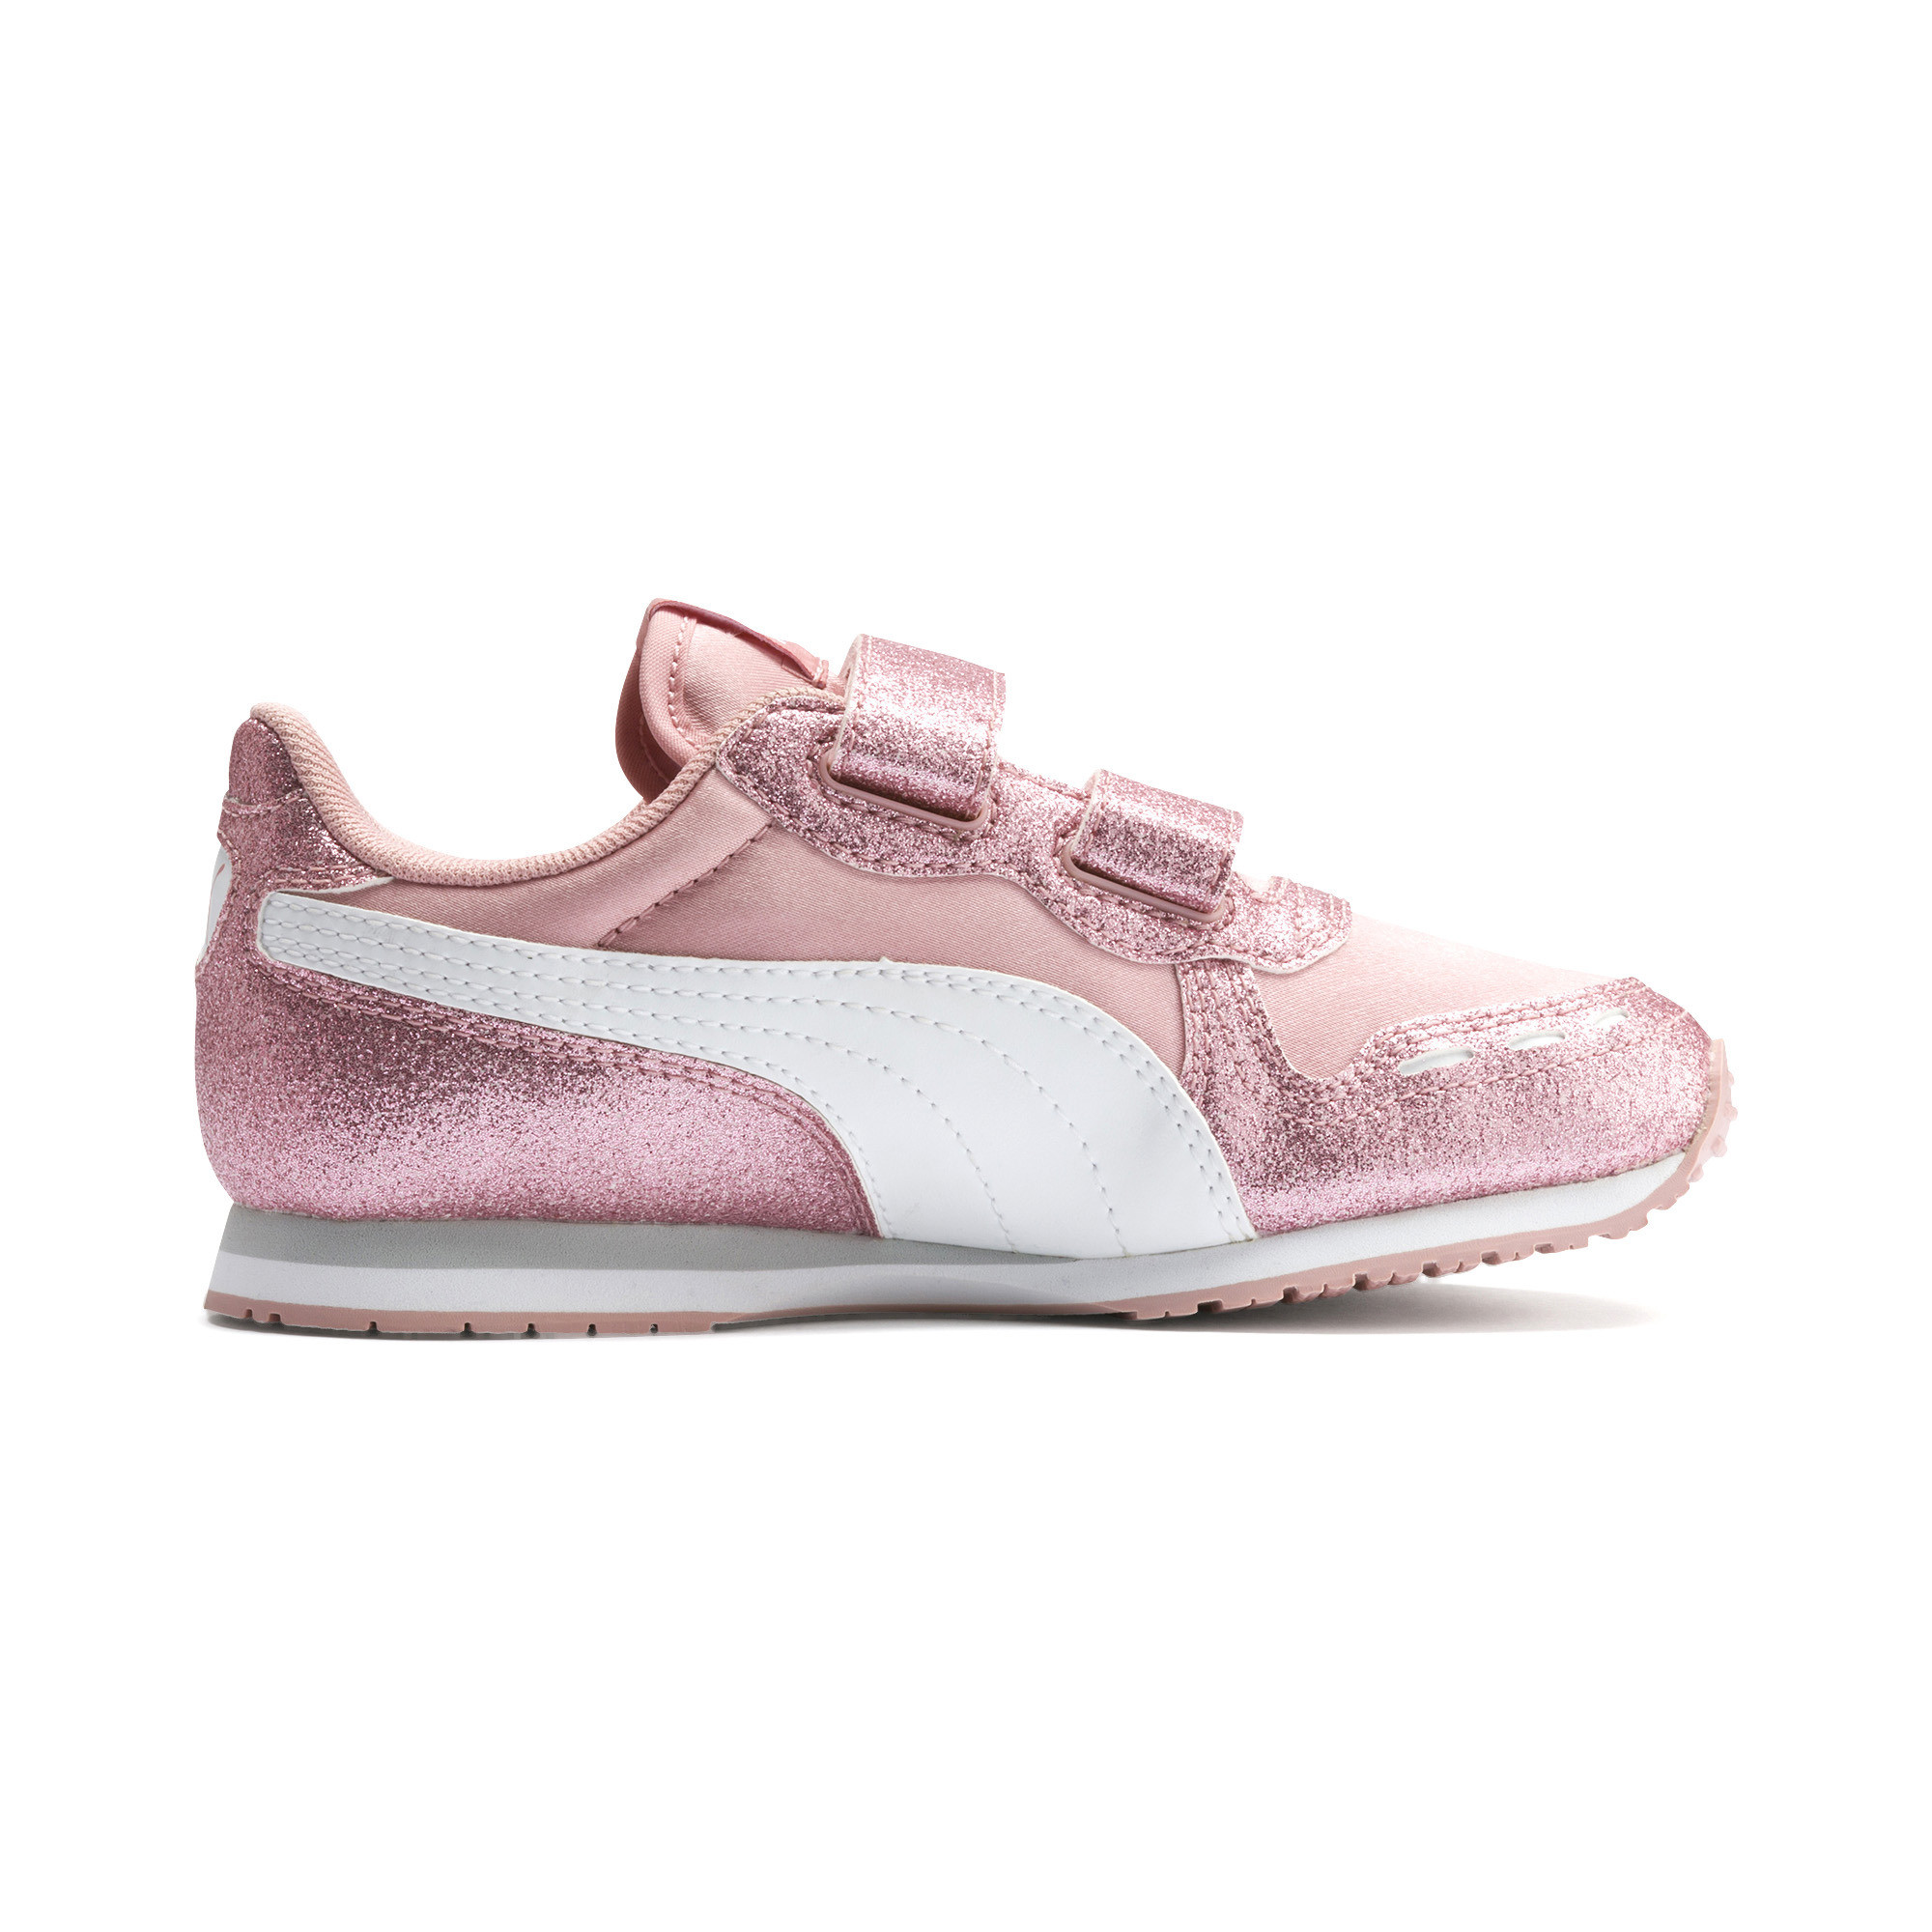 Details about PUMA Cabana Racer Glitz AC Shoes PS Girls Shoe Kids